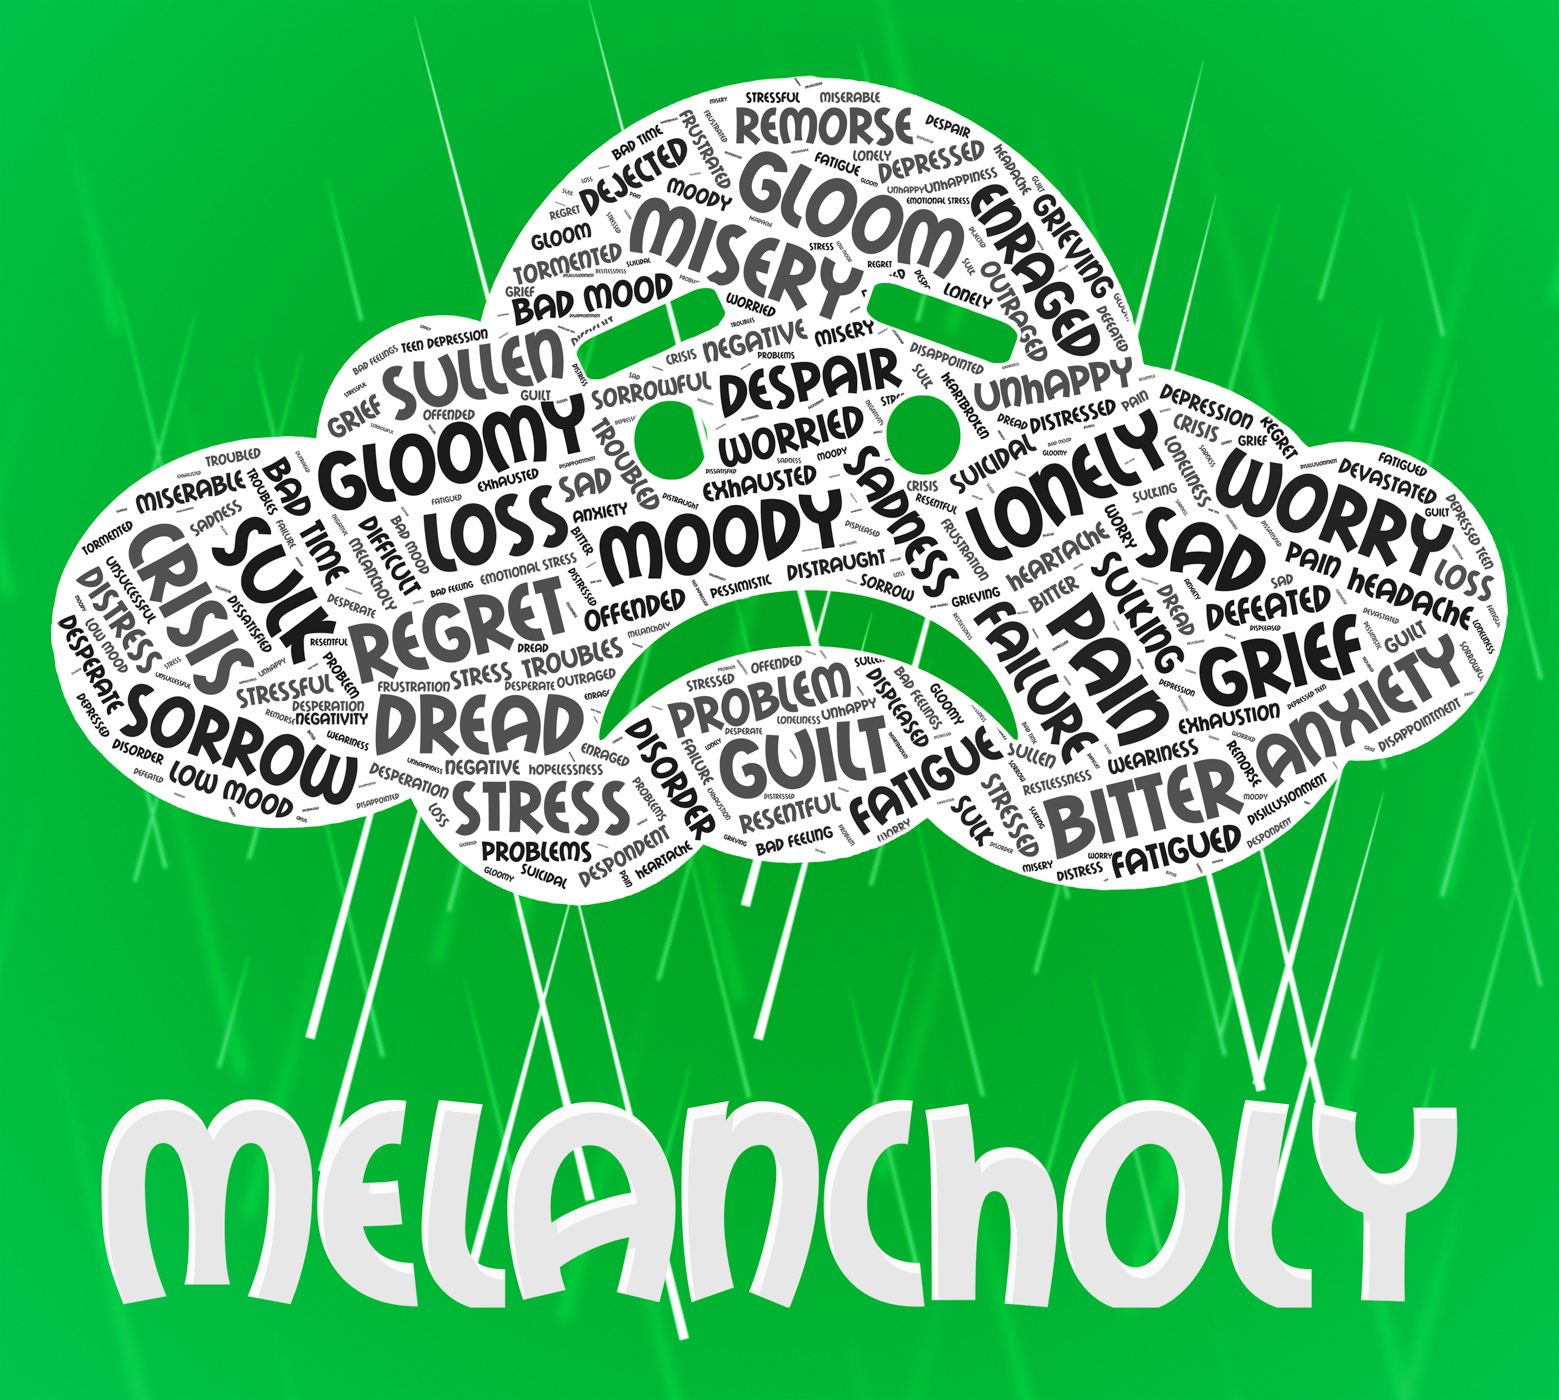 Melancholy Word Means Low Spirits And Dejected, Defeatism, Melancholy, Wordclouds, Wordcloud, HQ Photo